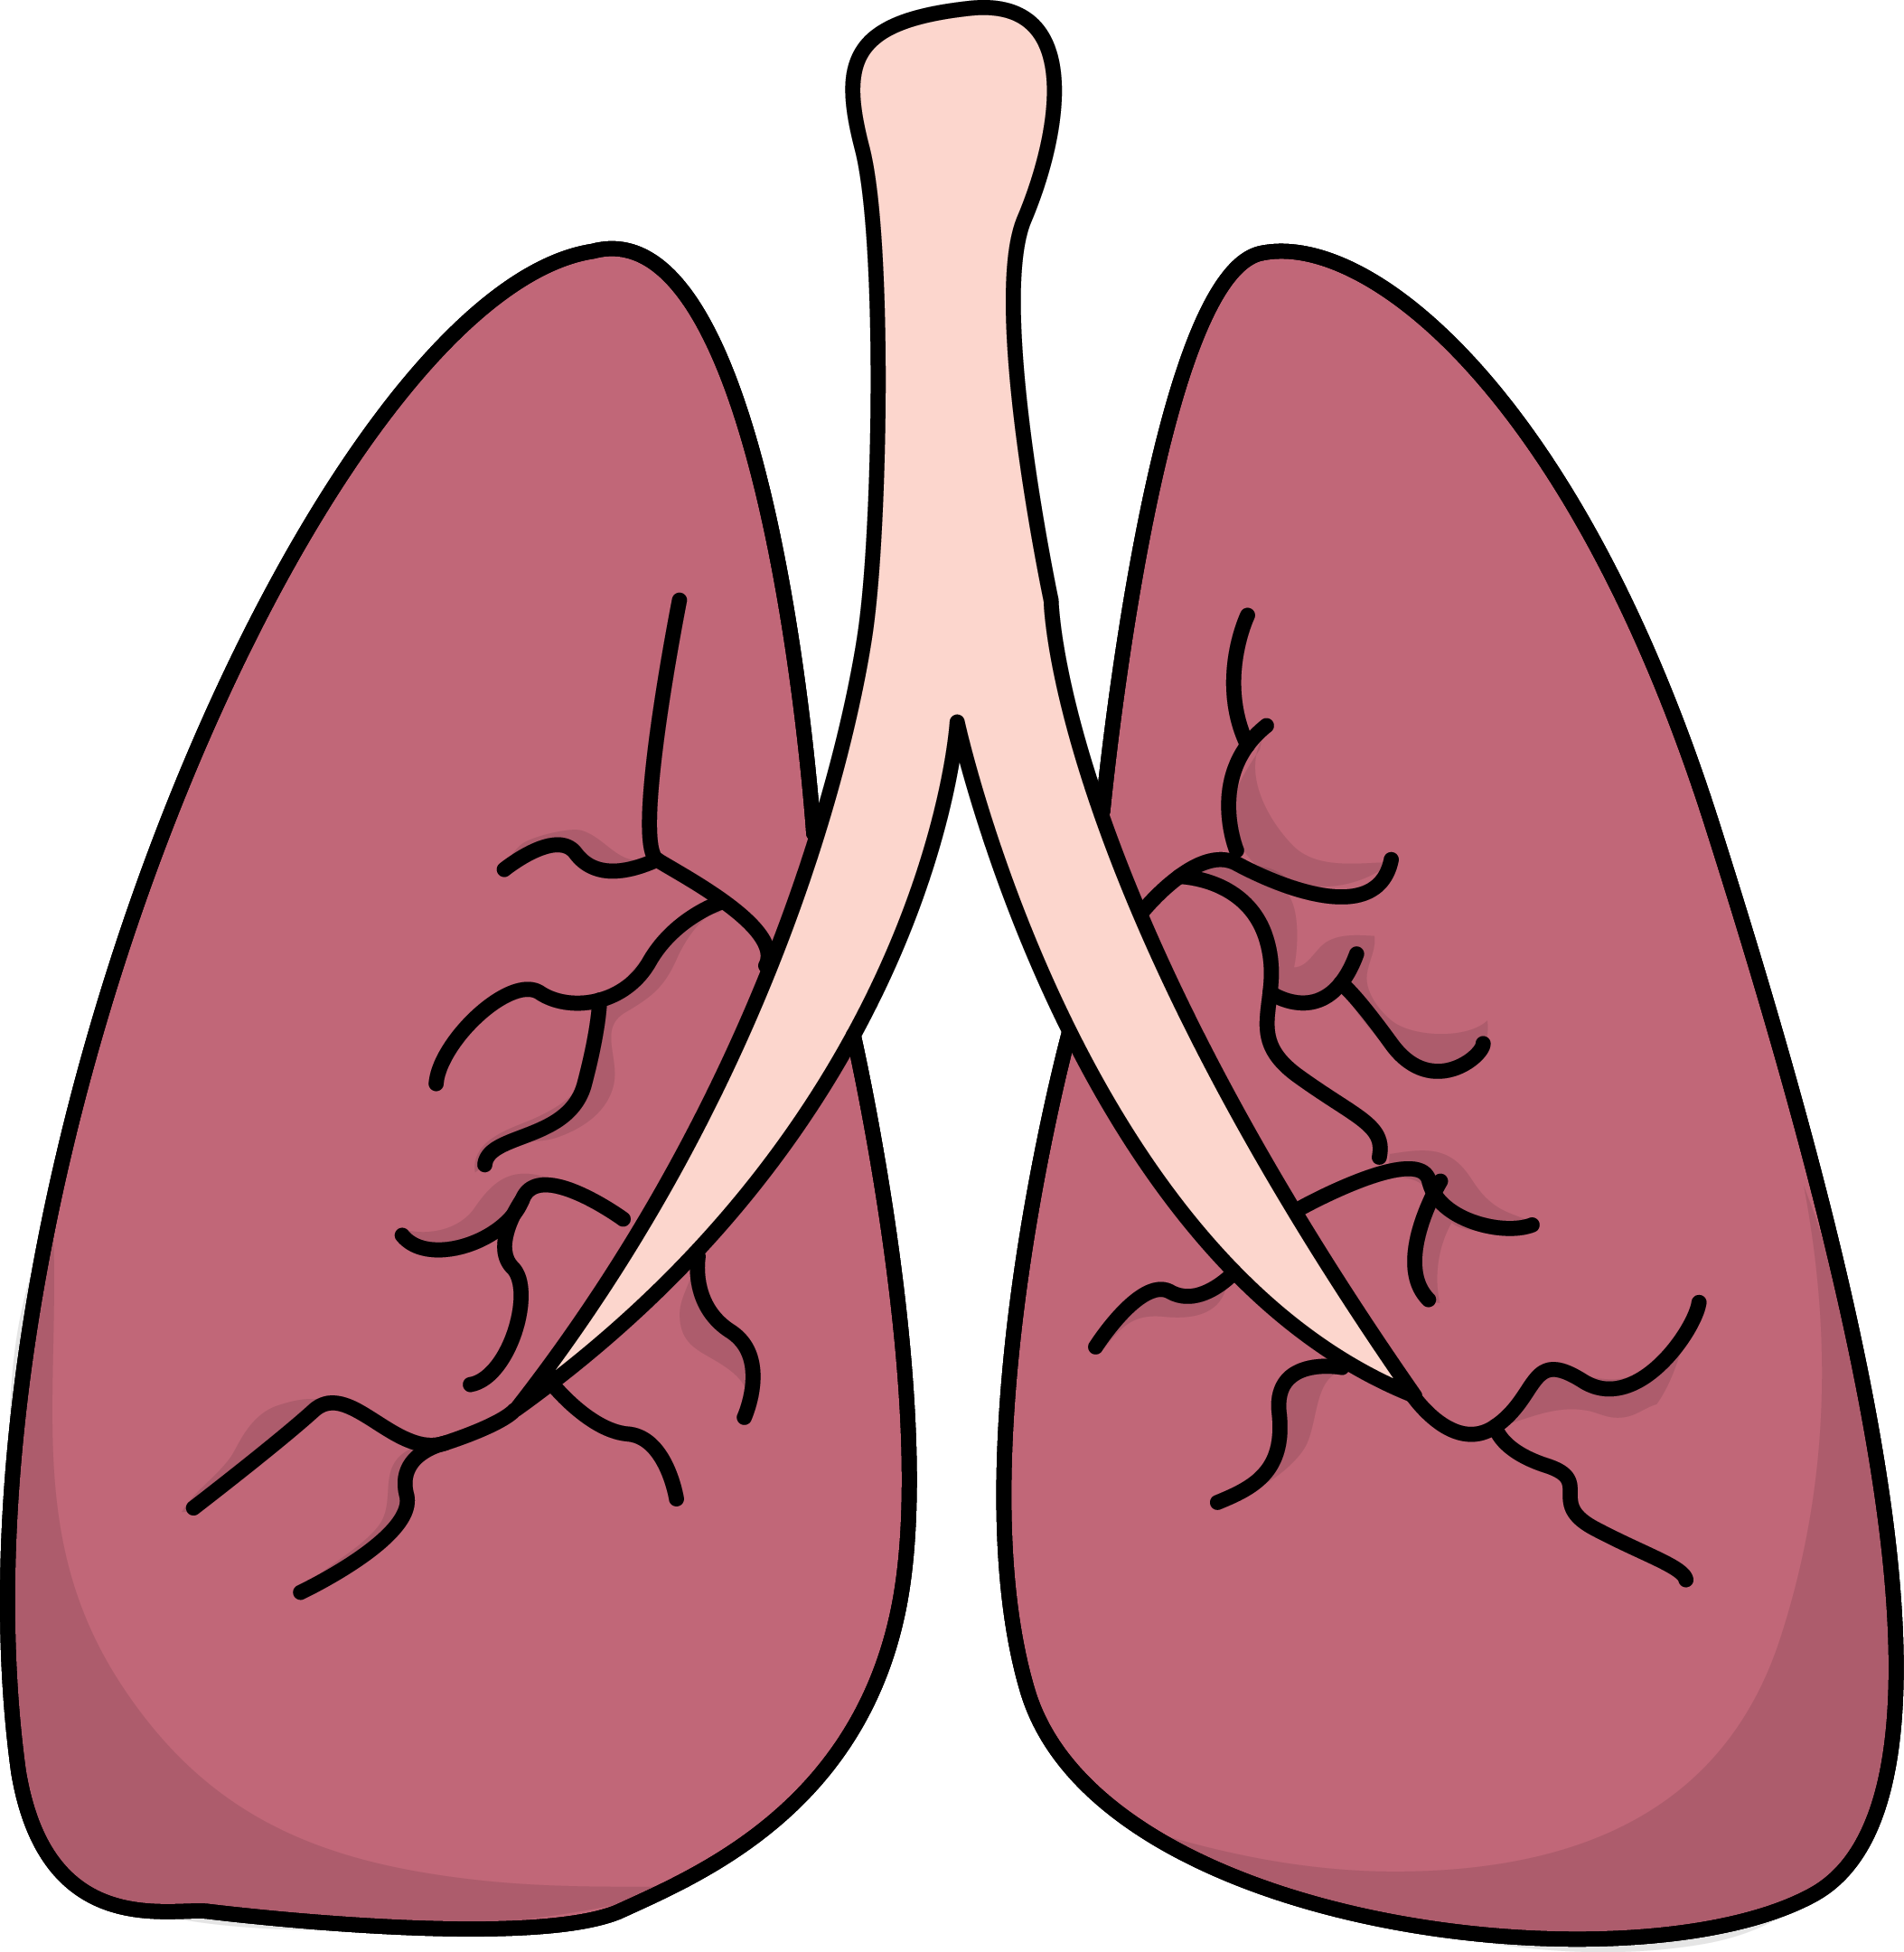 Healthy lungs clipart clip art download Free Small Lungs Cliparts, Download Free Clip Art, Free Clip Art on ... clip art download